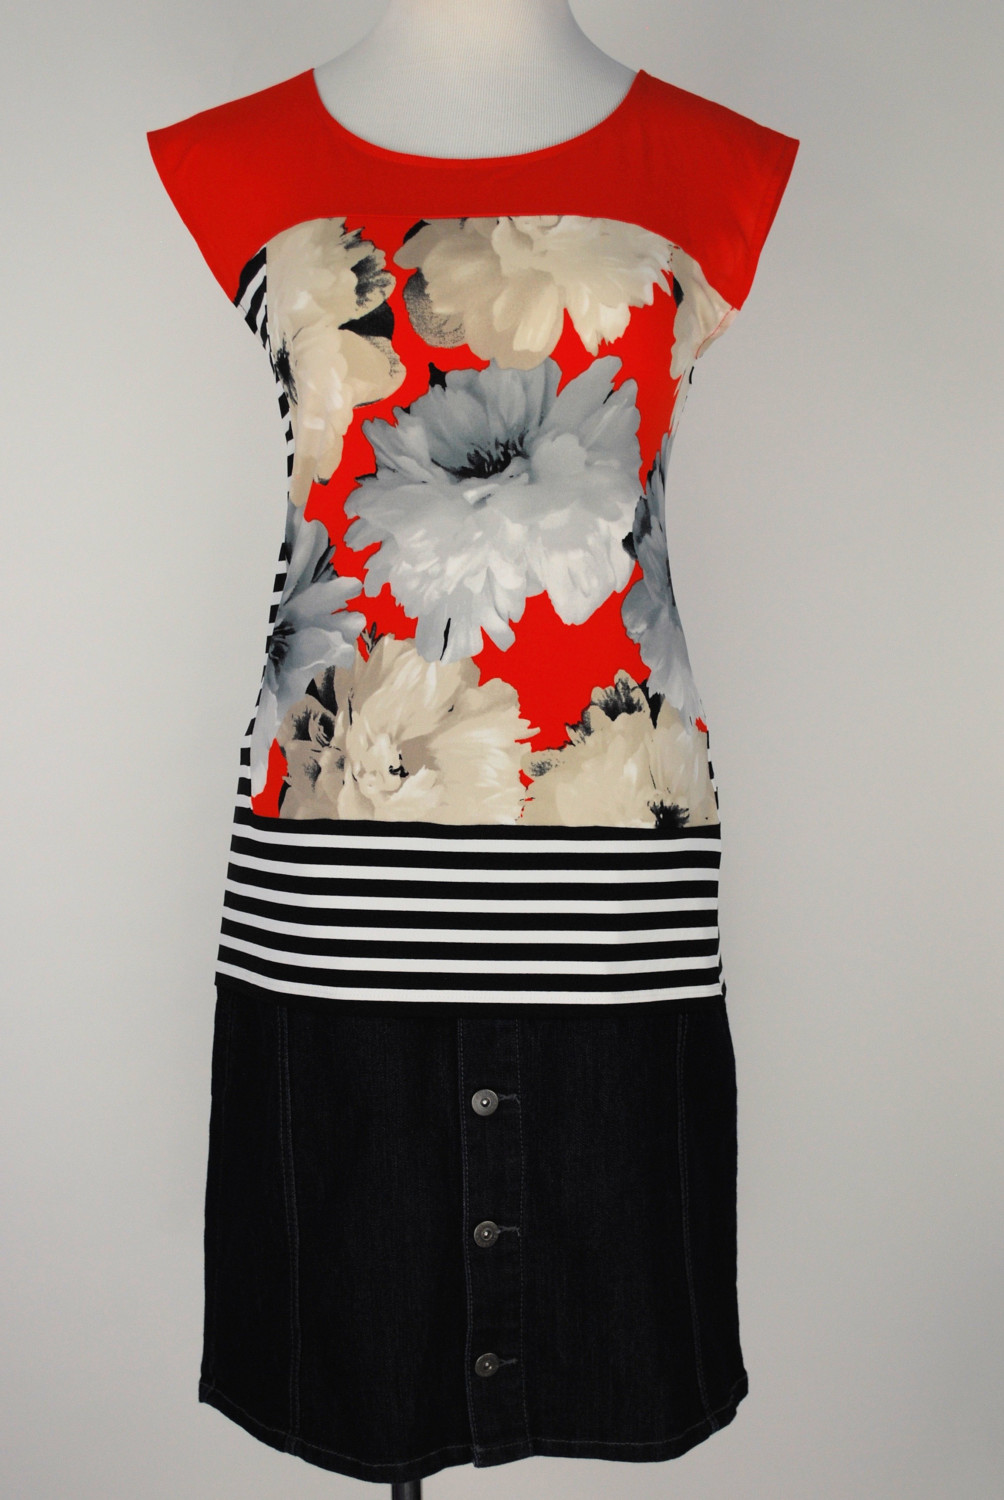 Style & Co Skirt – Original Retail: $49, CWS: $12